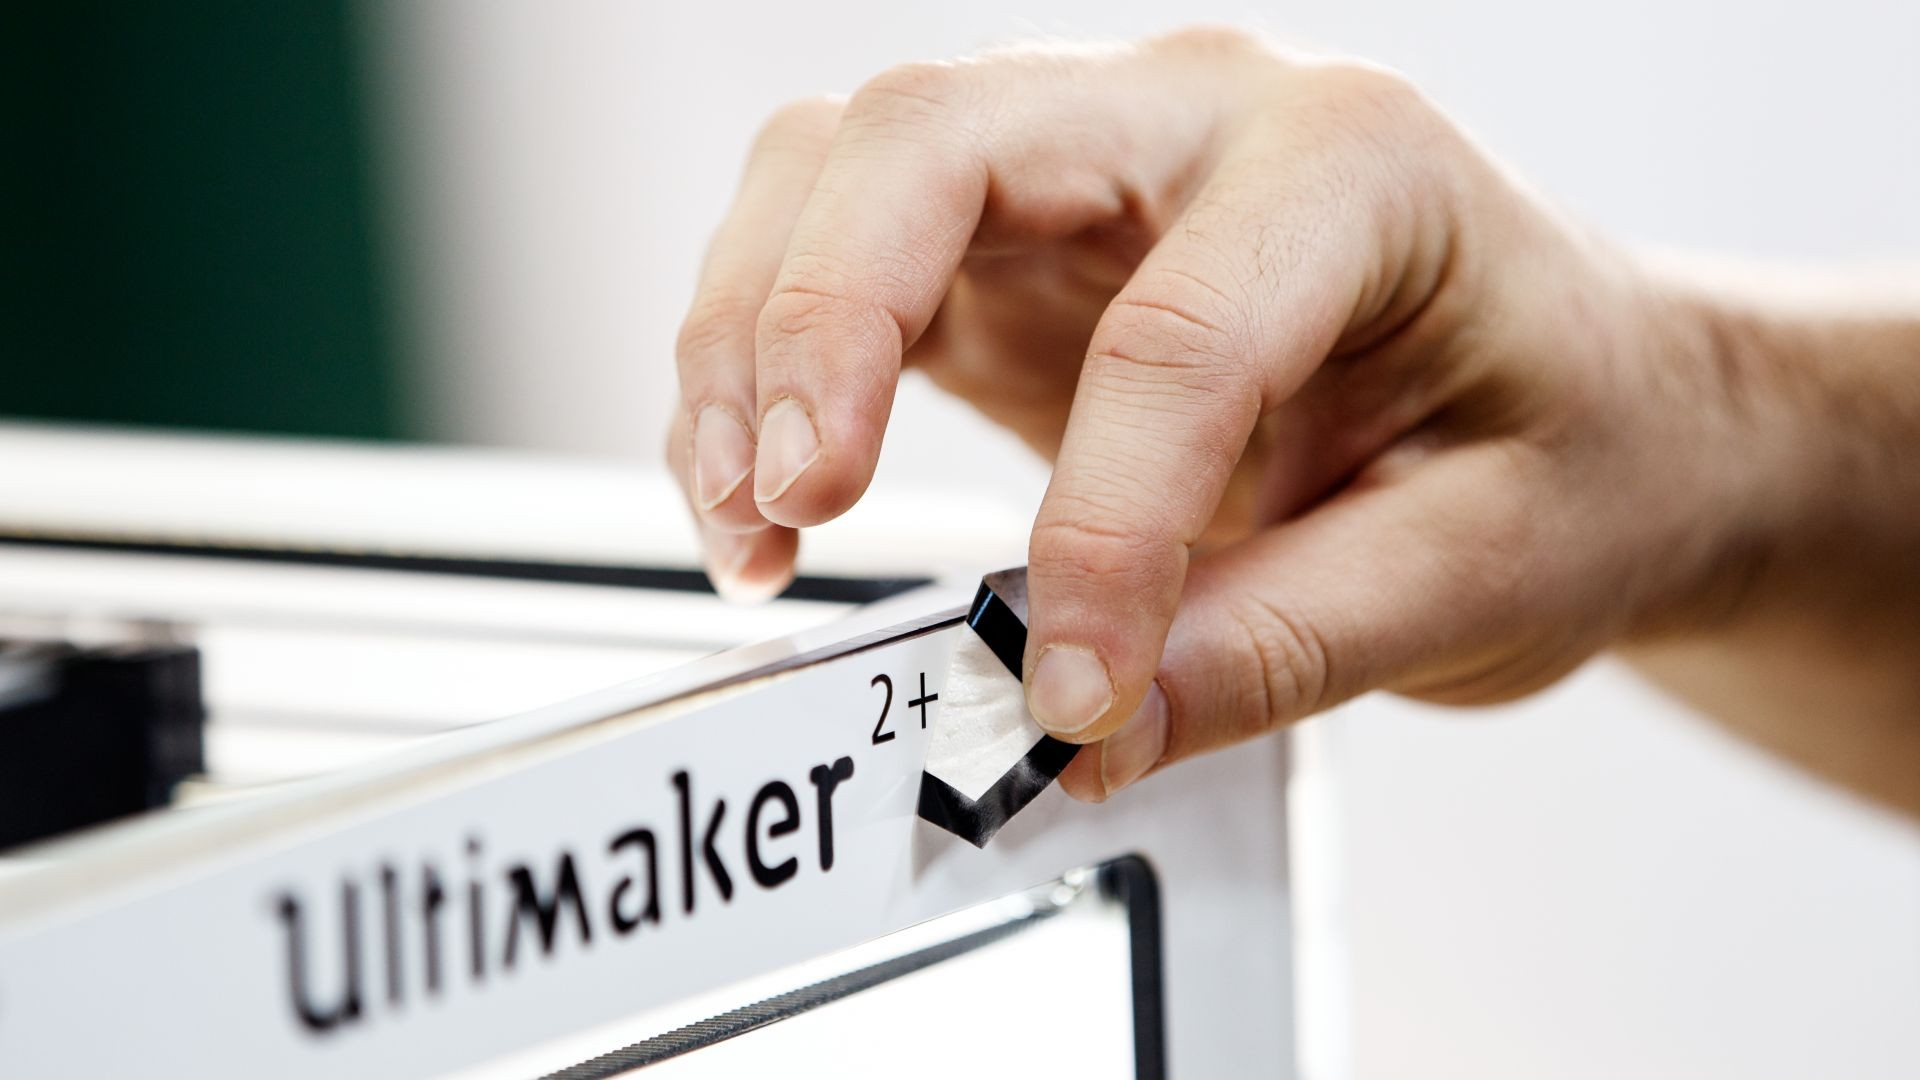 Ultimaker launches Extrusion upgrade kit at SXSW Interactive 2016